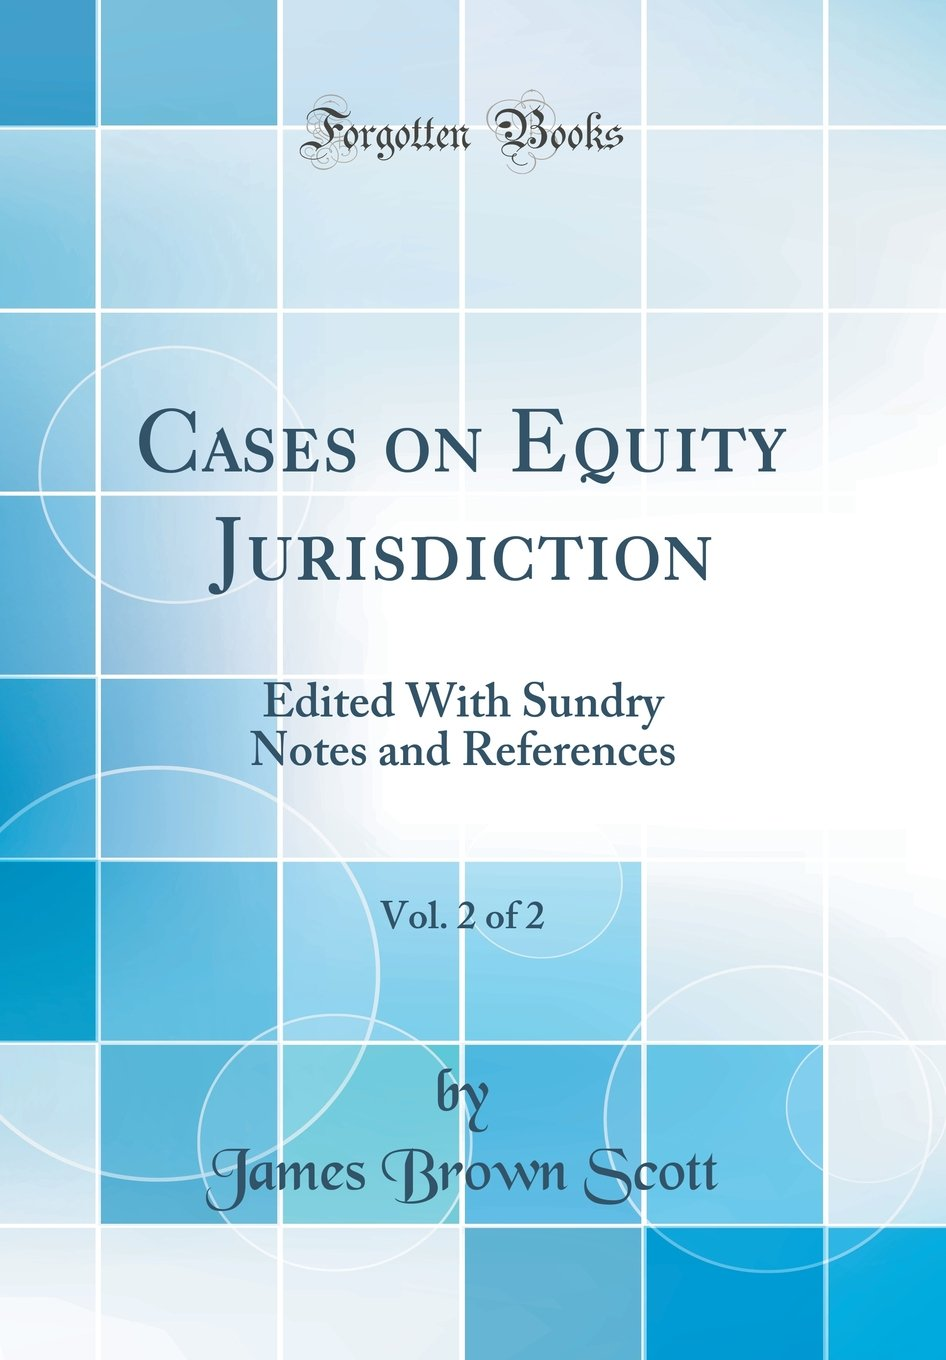 Cases on Equity Jurisdiction, Vol. 2 of 2: Edited with Sundry Notes and References (Classic Reprint) pdf epub